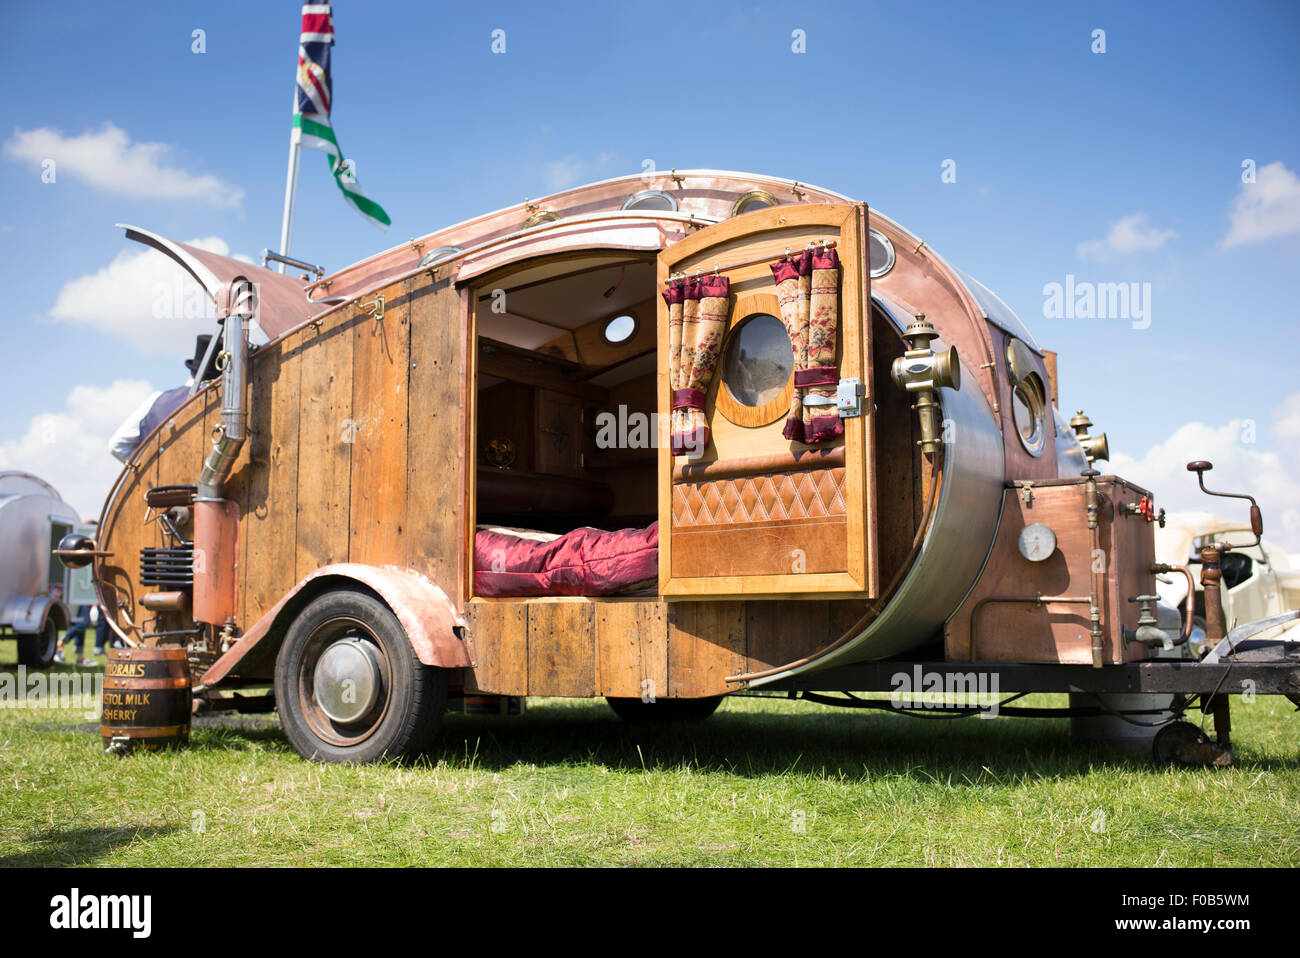 Steampunk Teardrop trailer at a vintage retro festival  UK